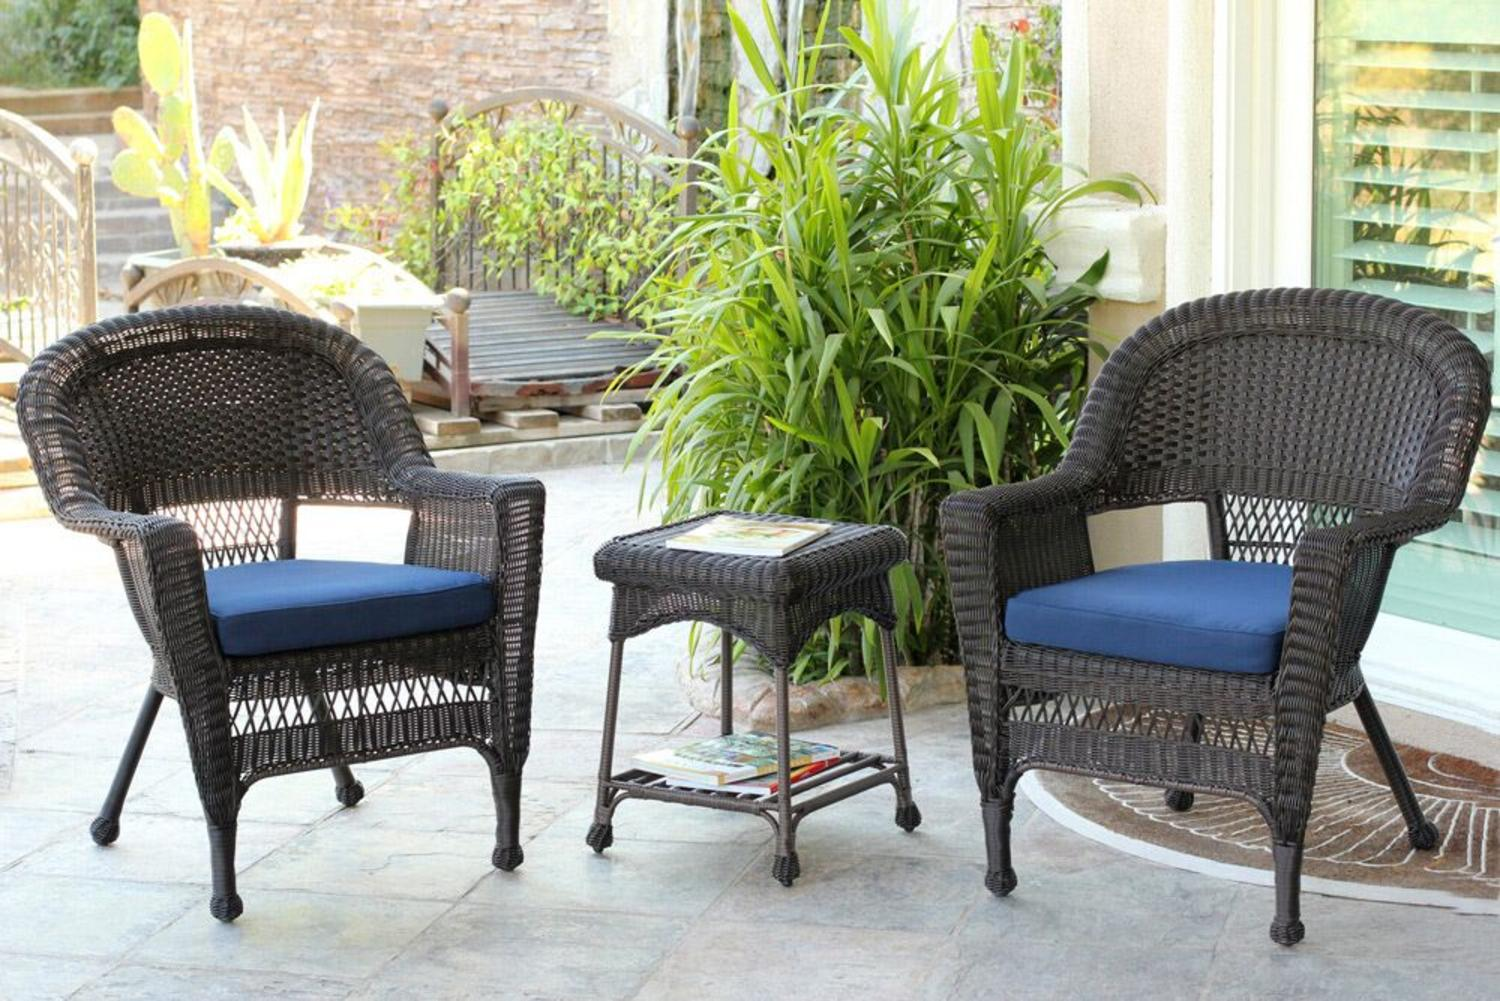 wicker patio set costway 4 pc patio rattan wicker chair sofa table set outdoor garden JSGDMSJ